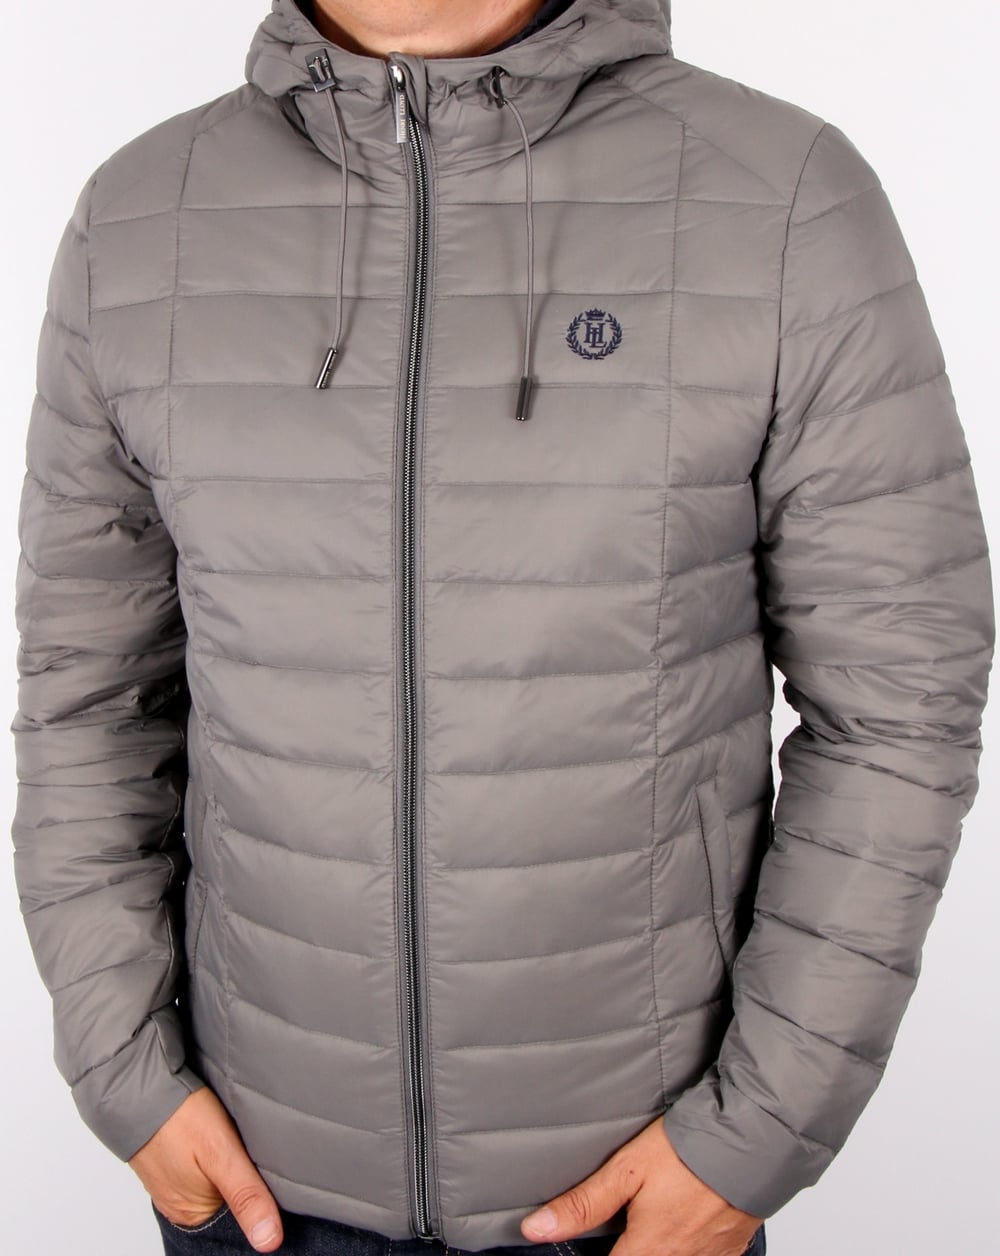 Henri Lloyd Jacket Grey, Down Filled, Ganton Lightweight Bubble Coat